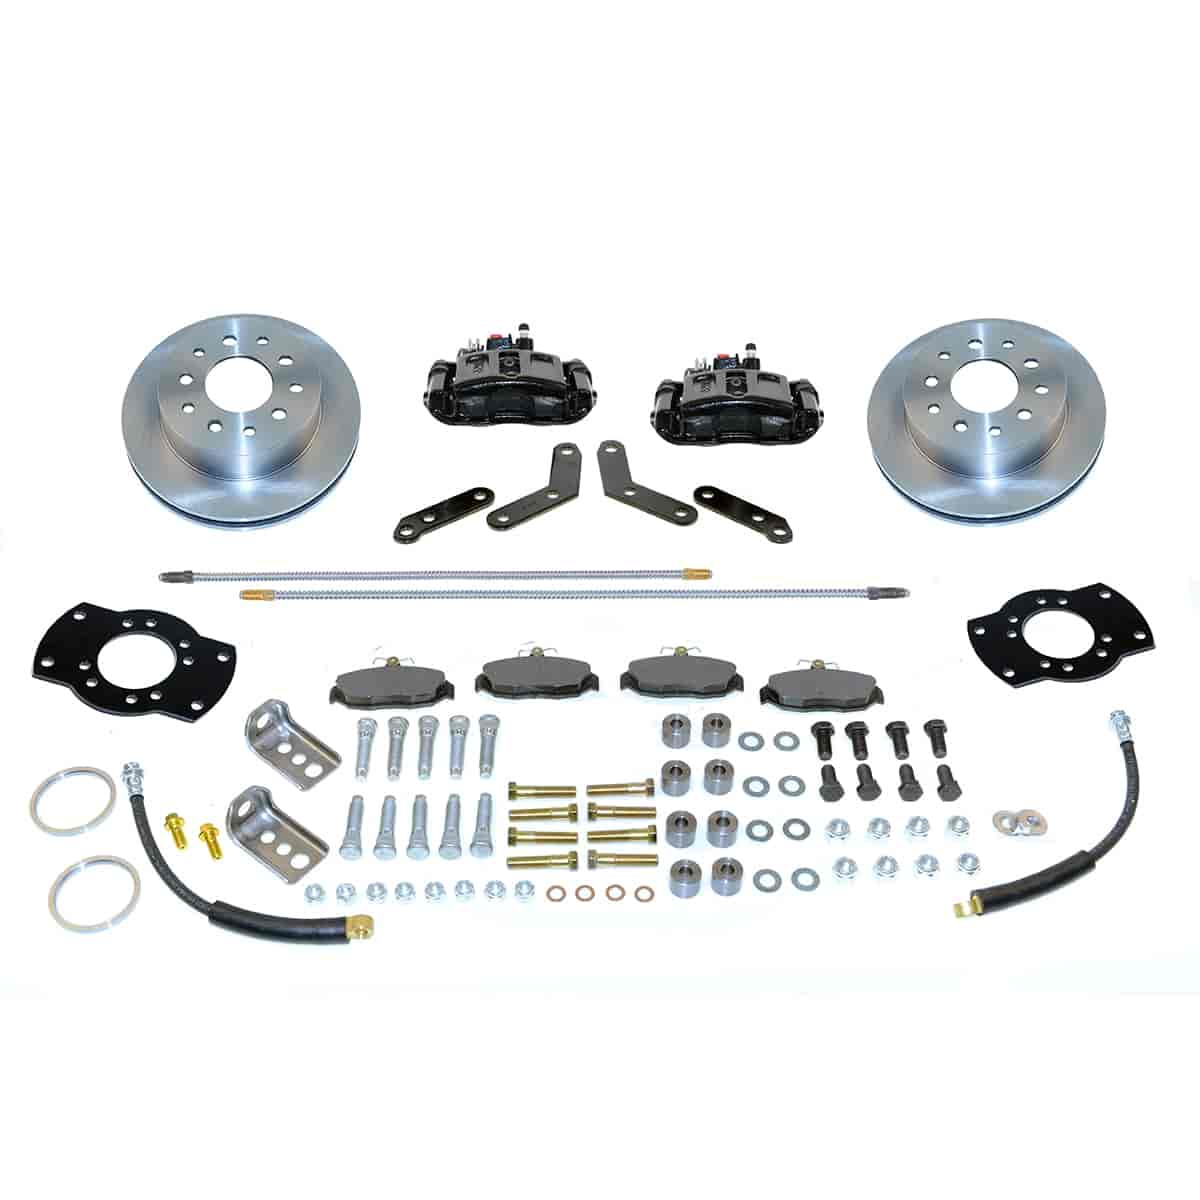 SSBC A126-1BK - Stainless Steel Brakes Single Piston Rear Drum to Disc Brake Conversion Kits